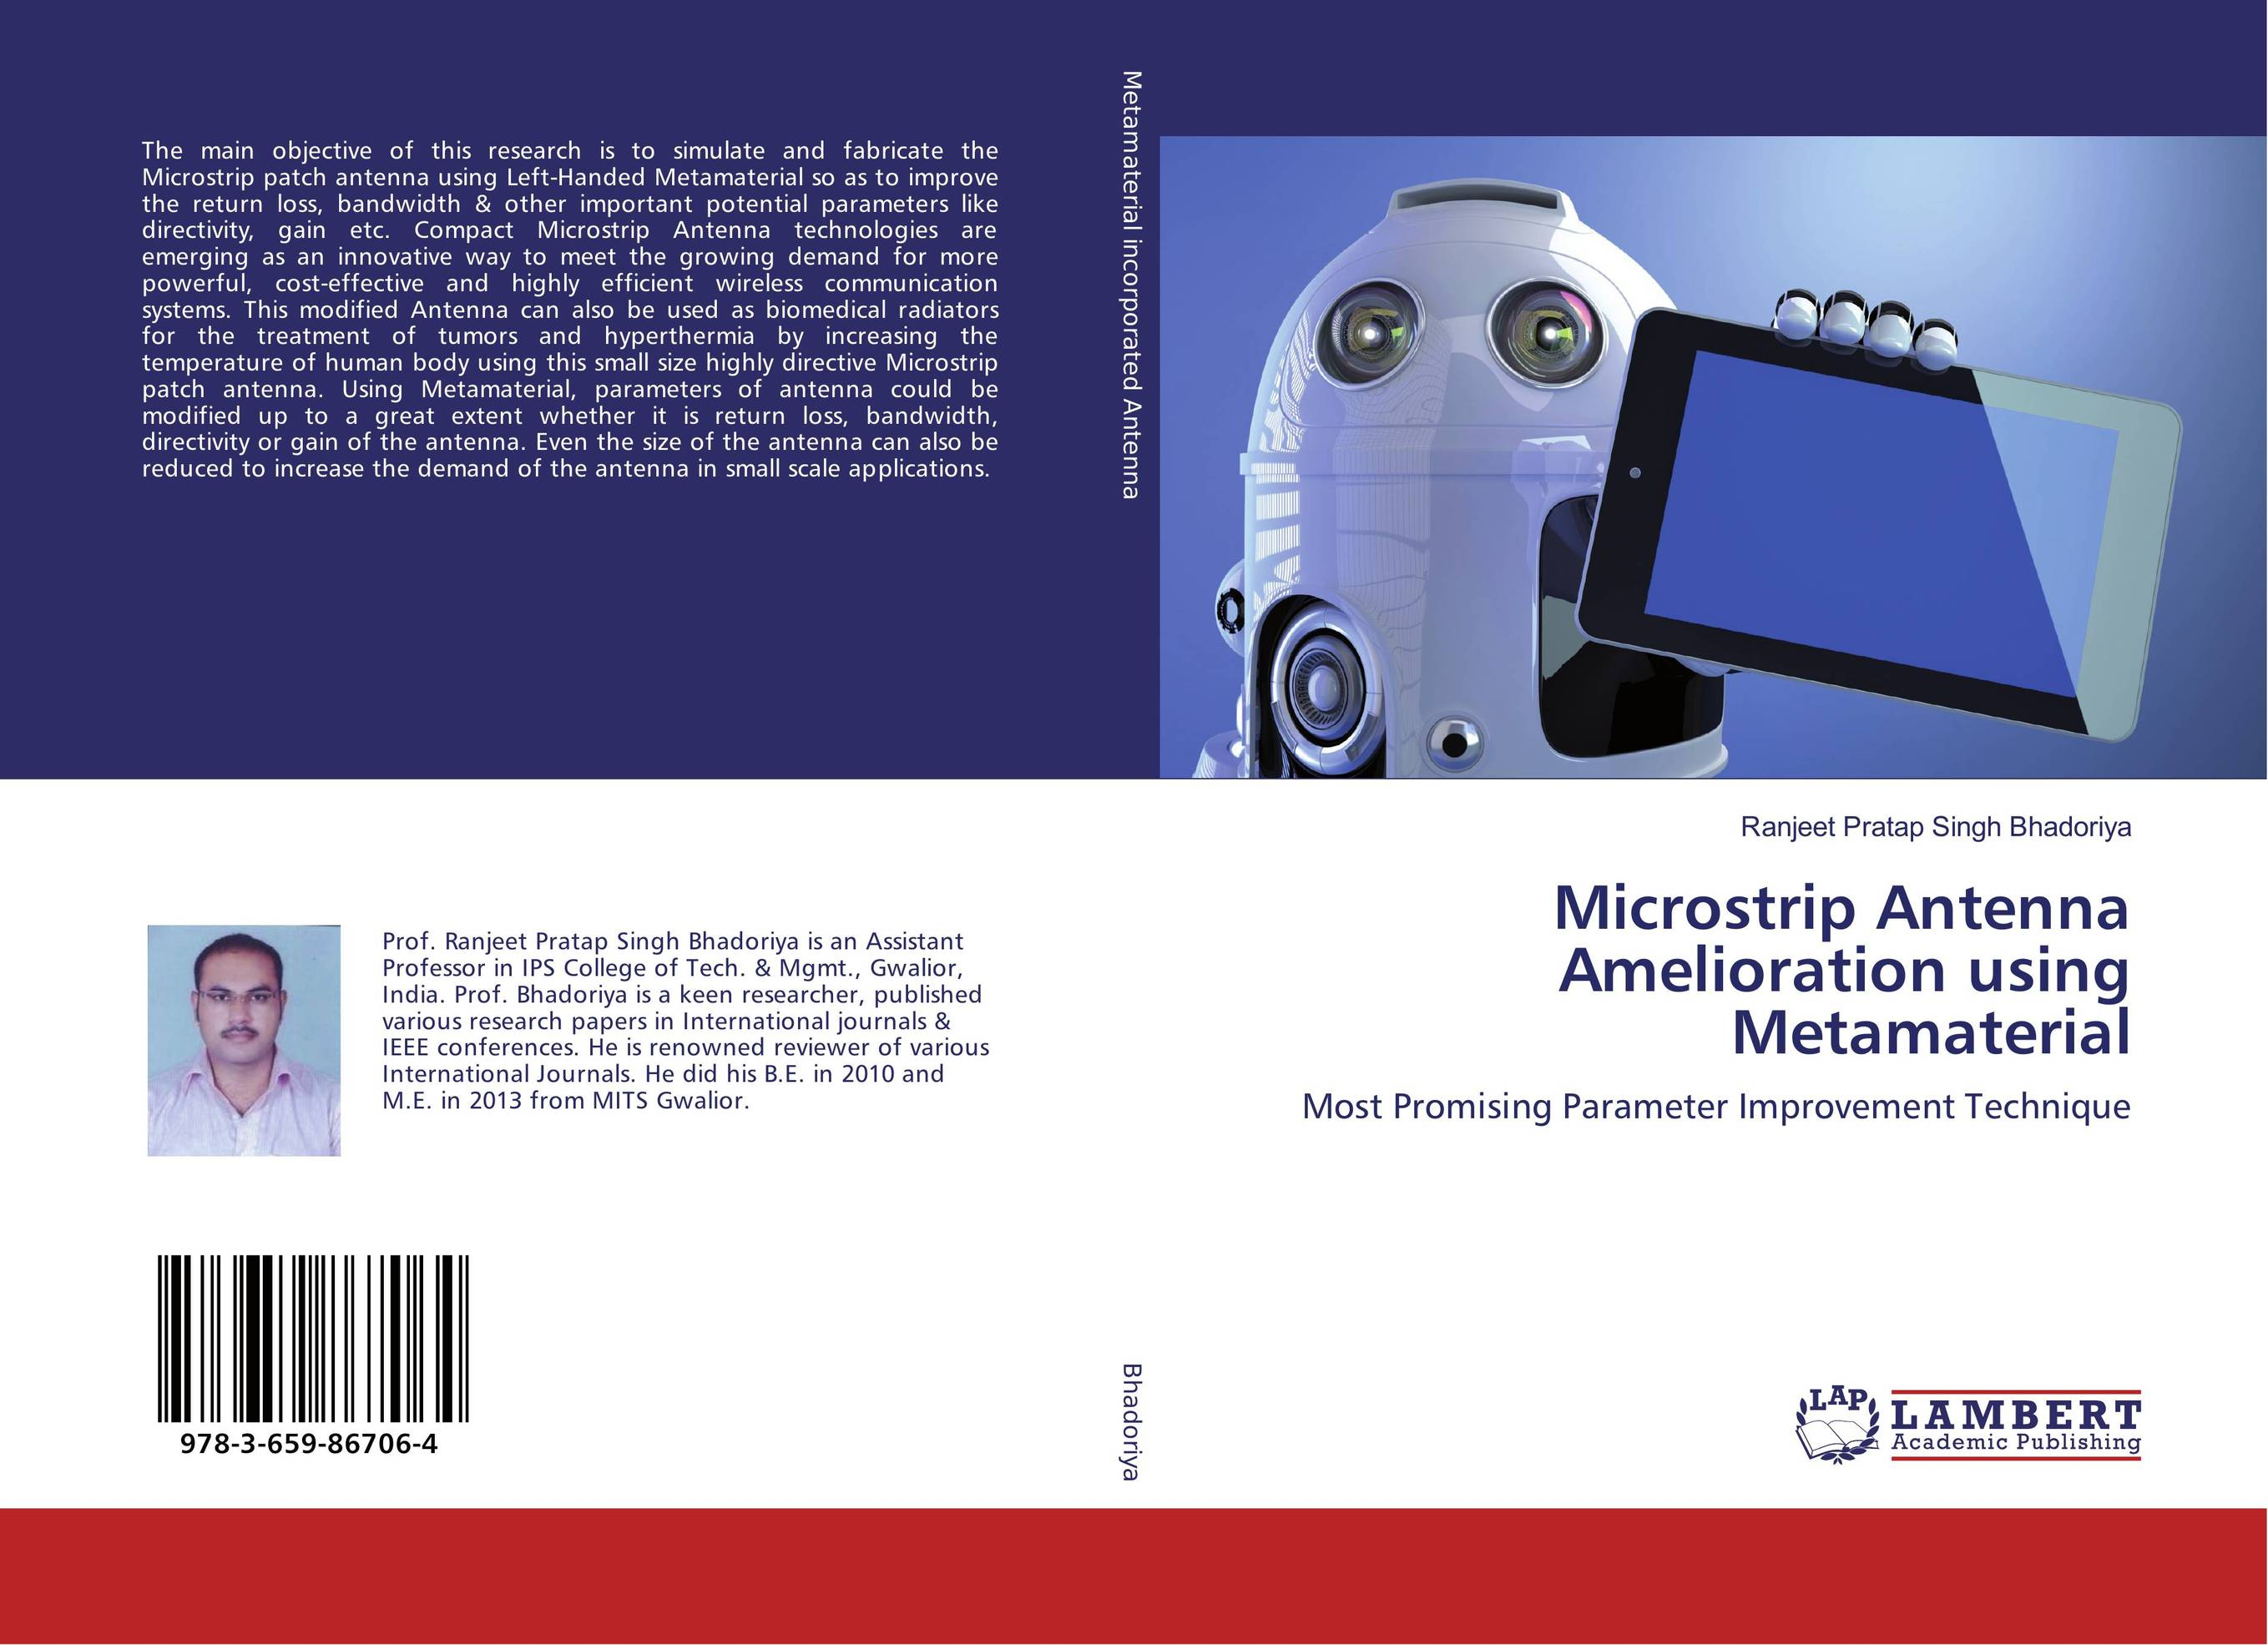 Microstrip Antenna Amelioration using Metamaterial design of microstrip antenna in wireless communication